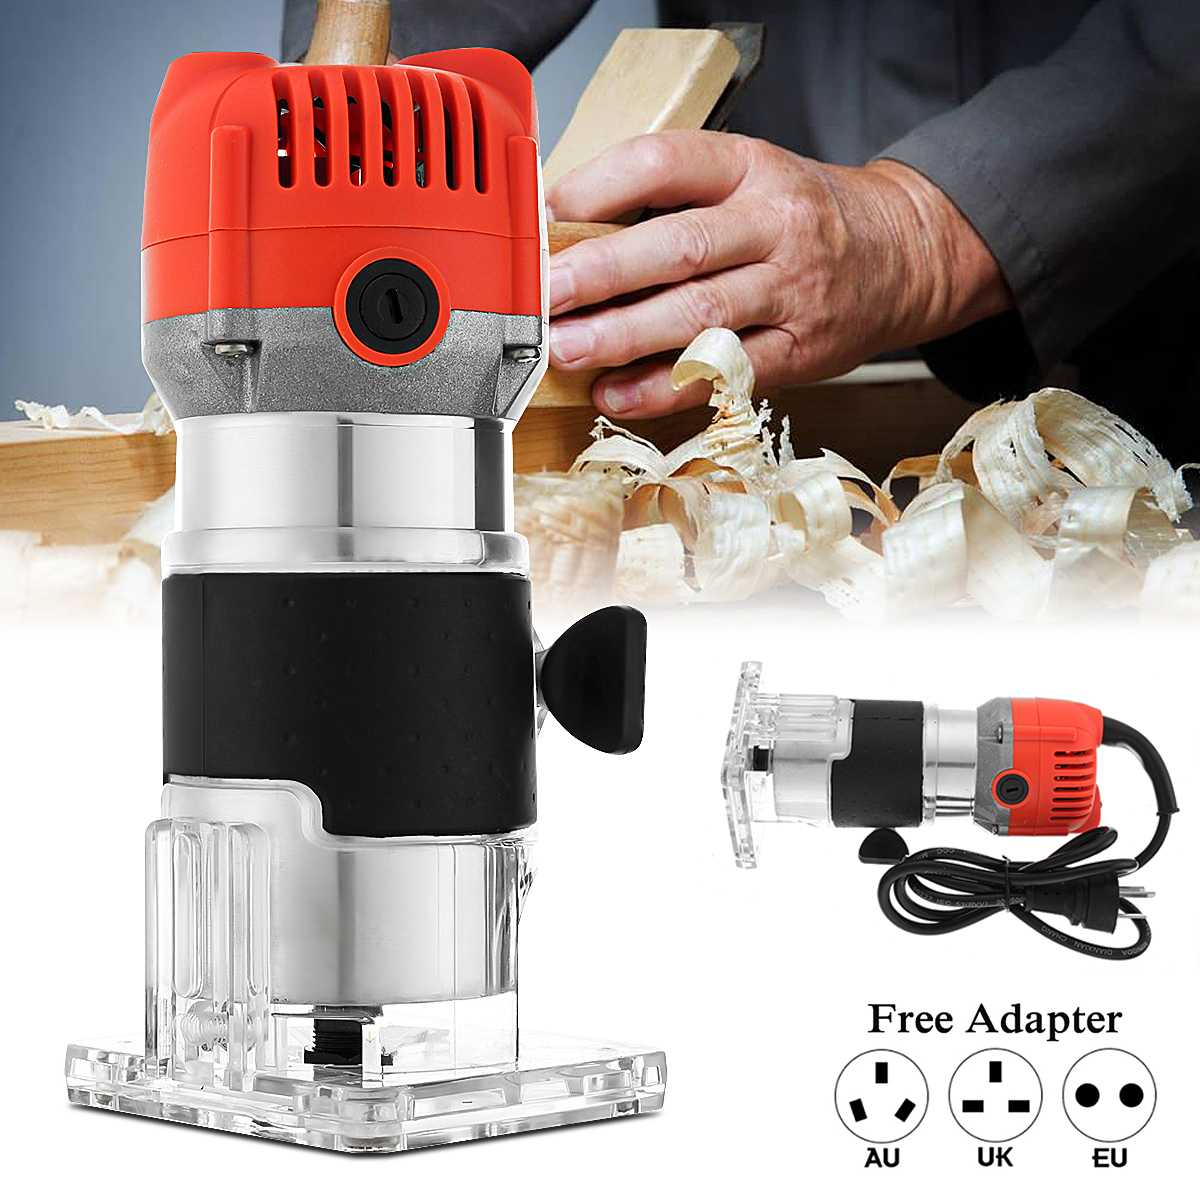 Adroit 800w 220v 30000rpm Woodworking Electric Hand Trimmer Wood Router Laminator Router Wood Diy Carving Machine Cutting Power Tool To Suit The People'S Convenience